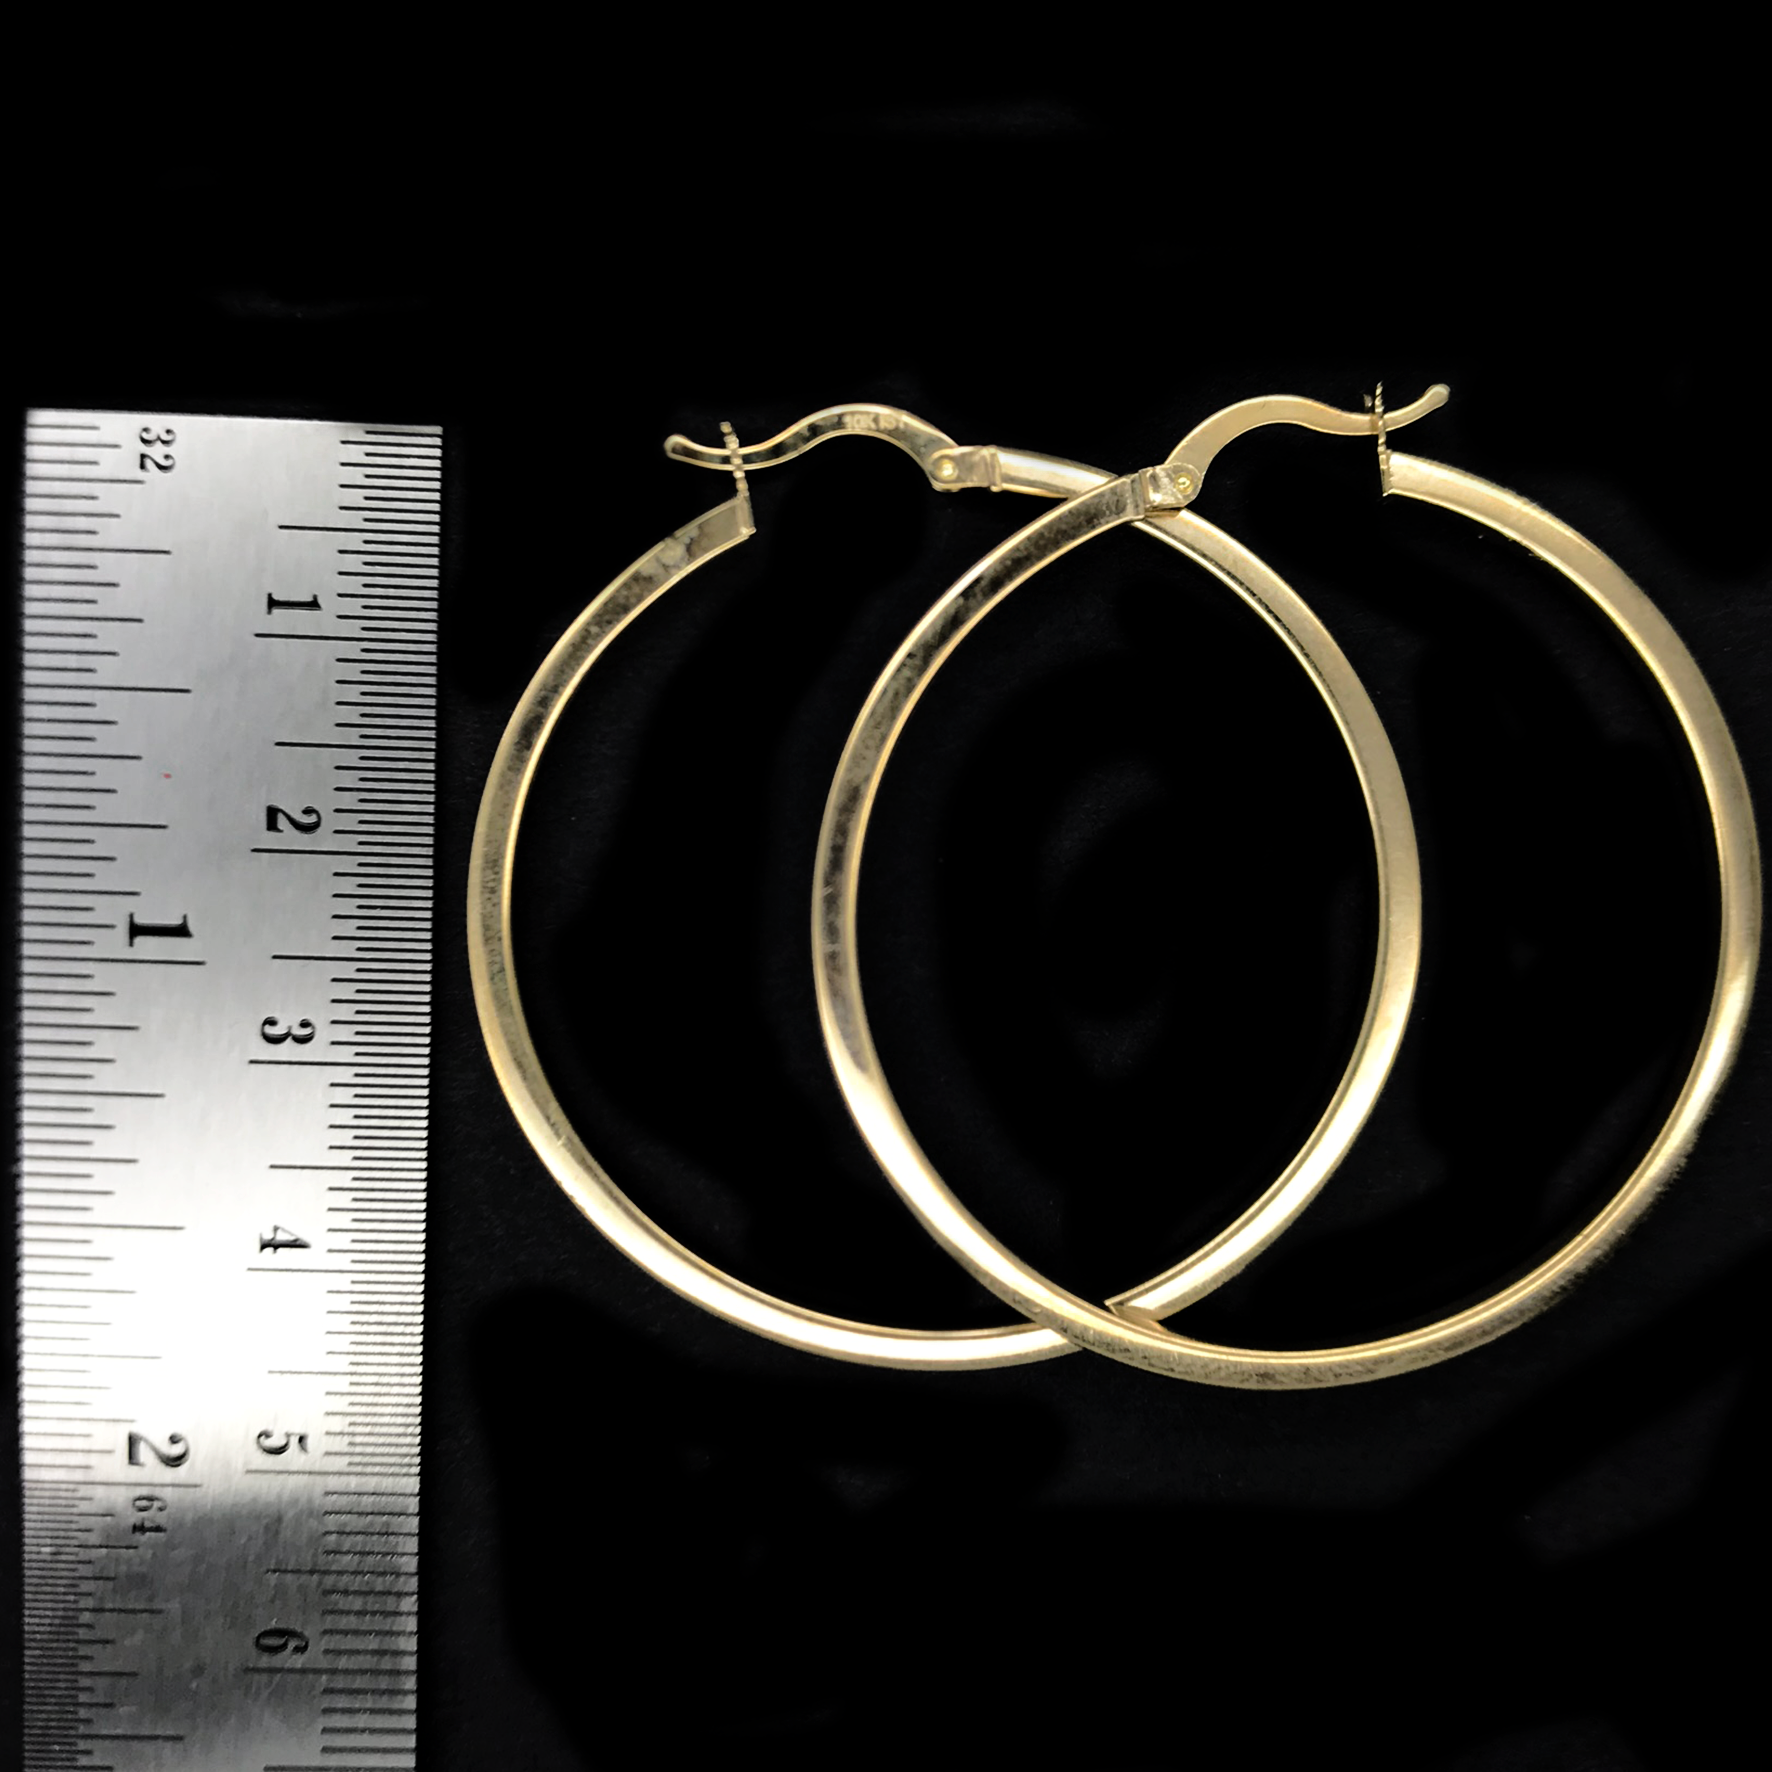 Arracadas lisas De Oro 10KT/10KT Gold Plain Hoop Earrings